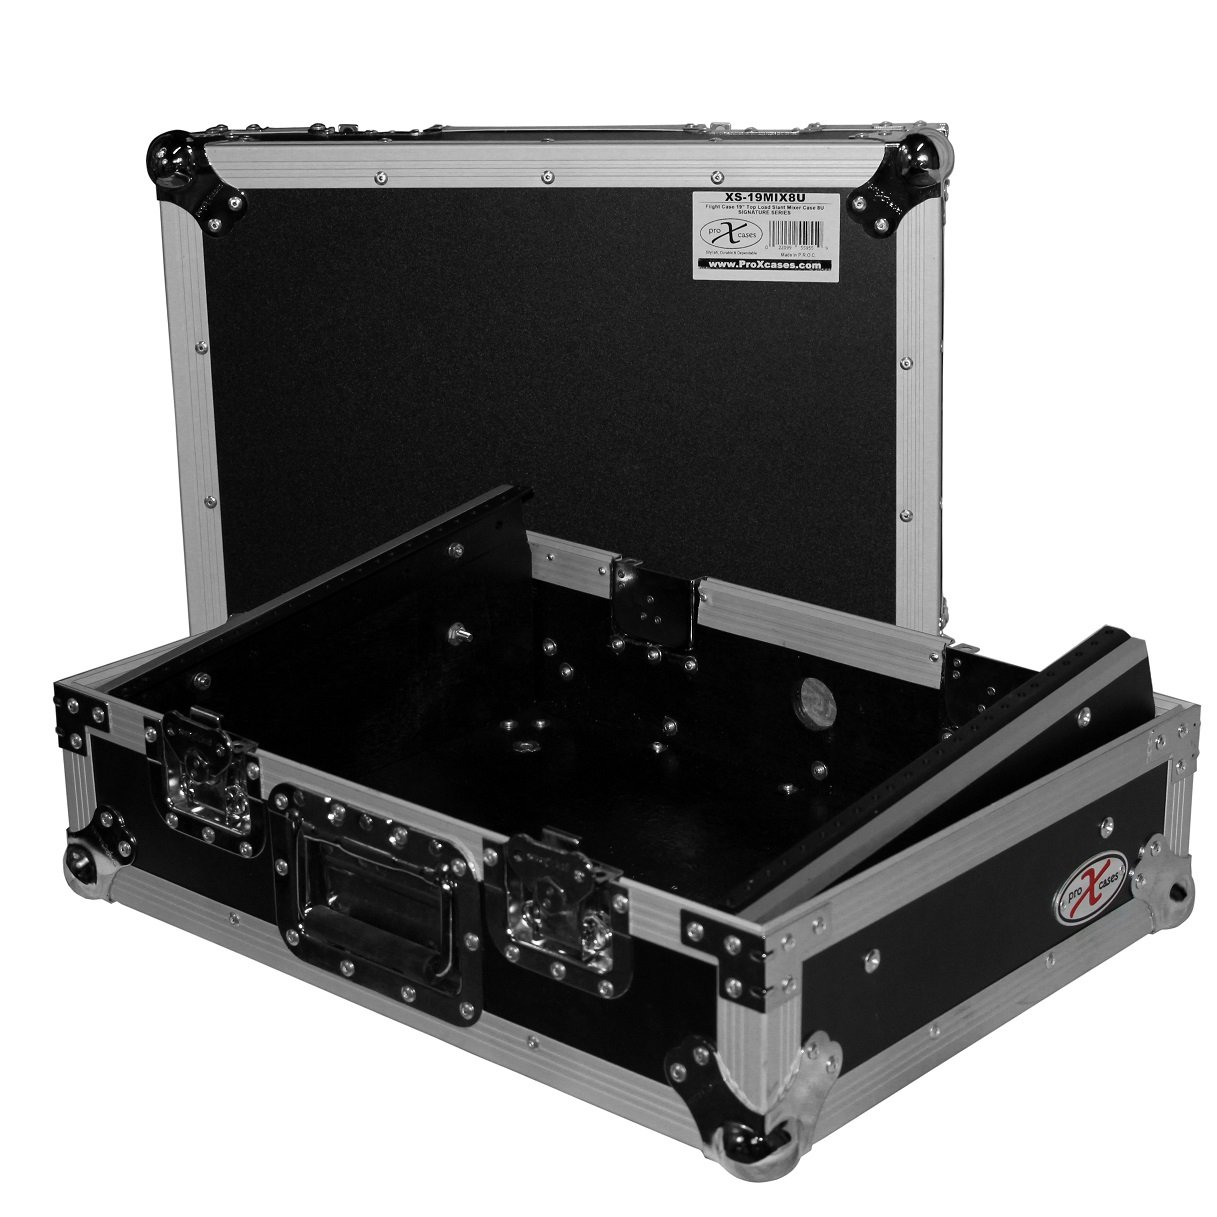 prox-xs-19mix8u-8u-top-mount-19in-slanted-mixer-case.jpg